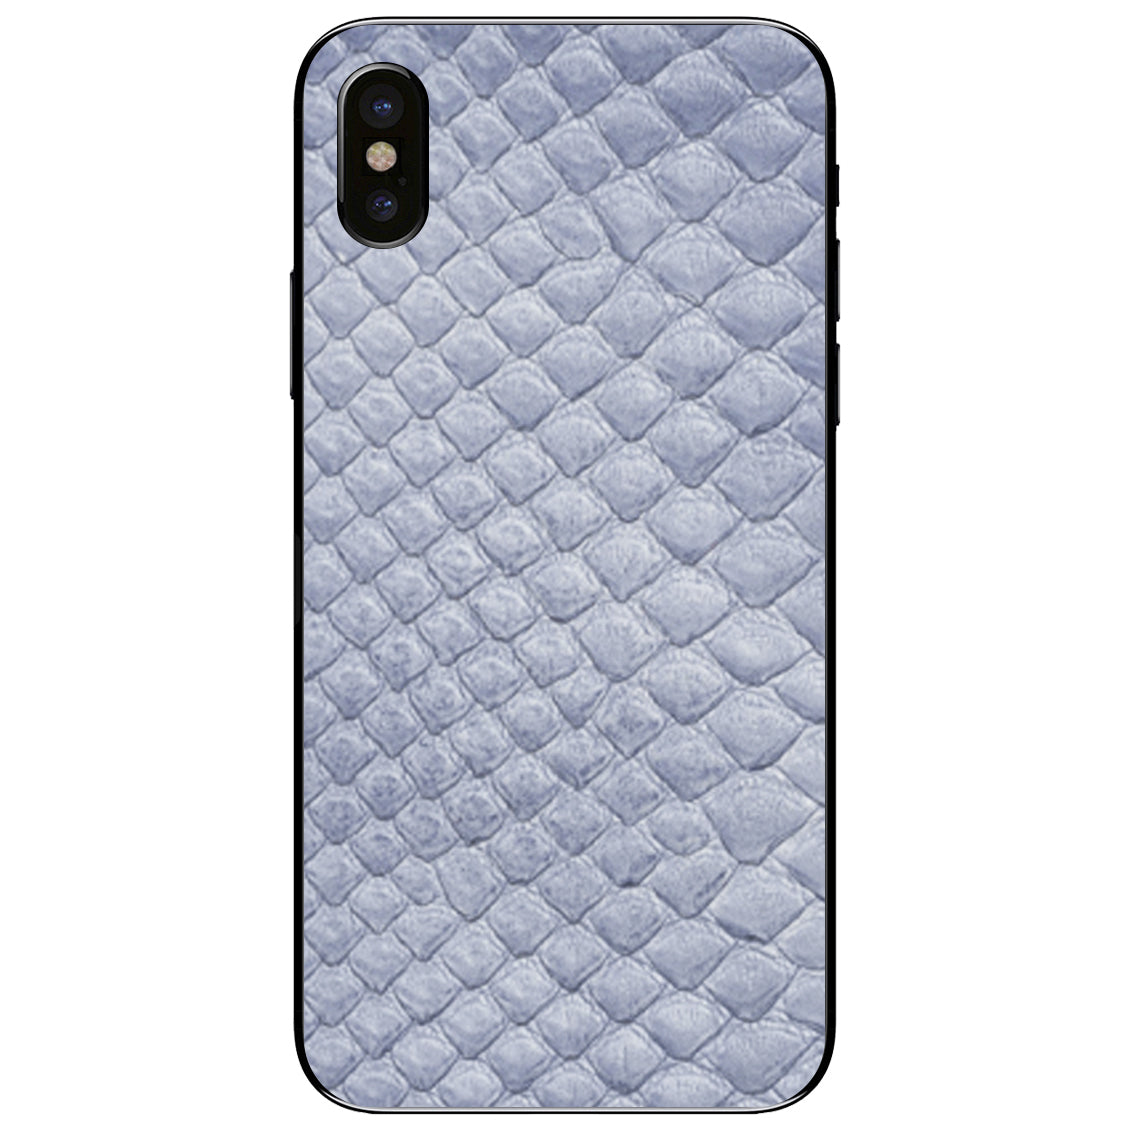 Sea Python Back iPhone X Leather Skin